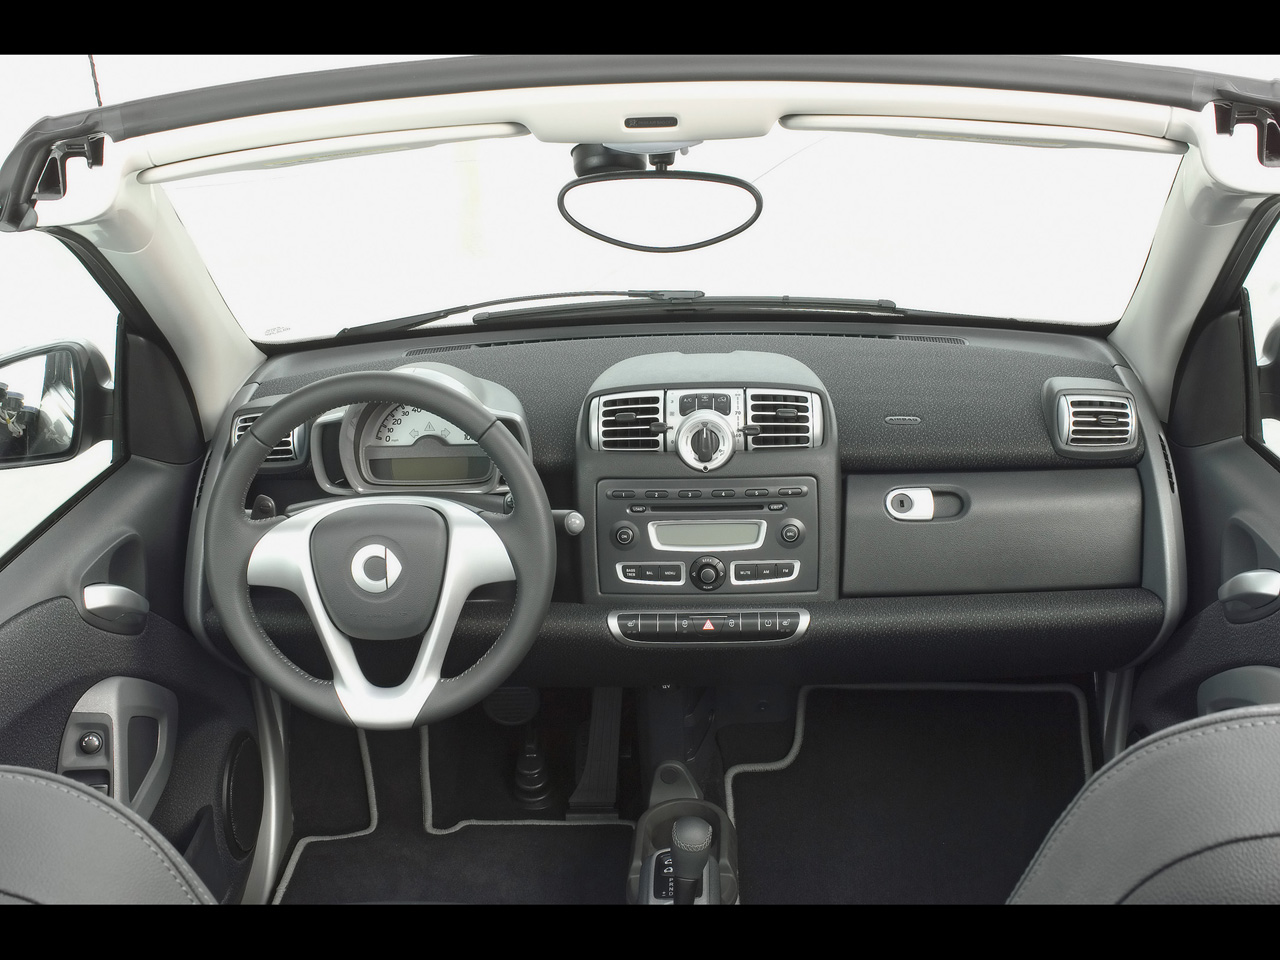 Smart fortwo photo - 2